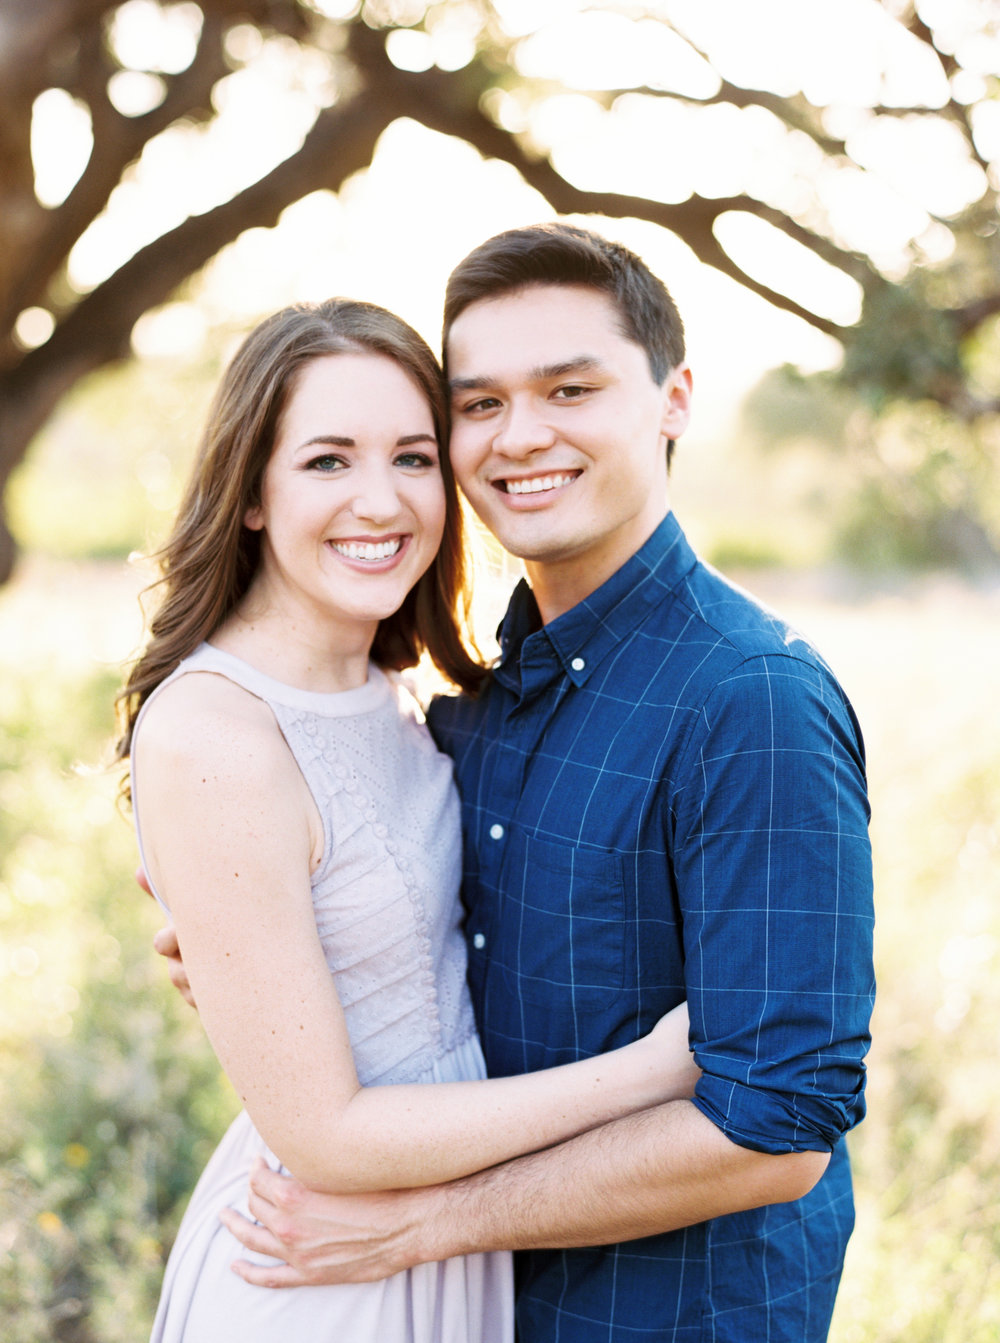 Engagement Session Outfits-105.jpg